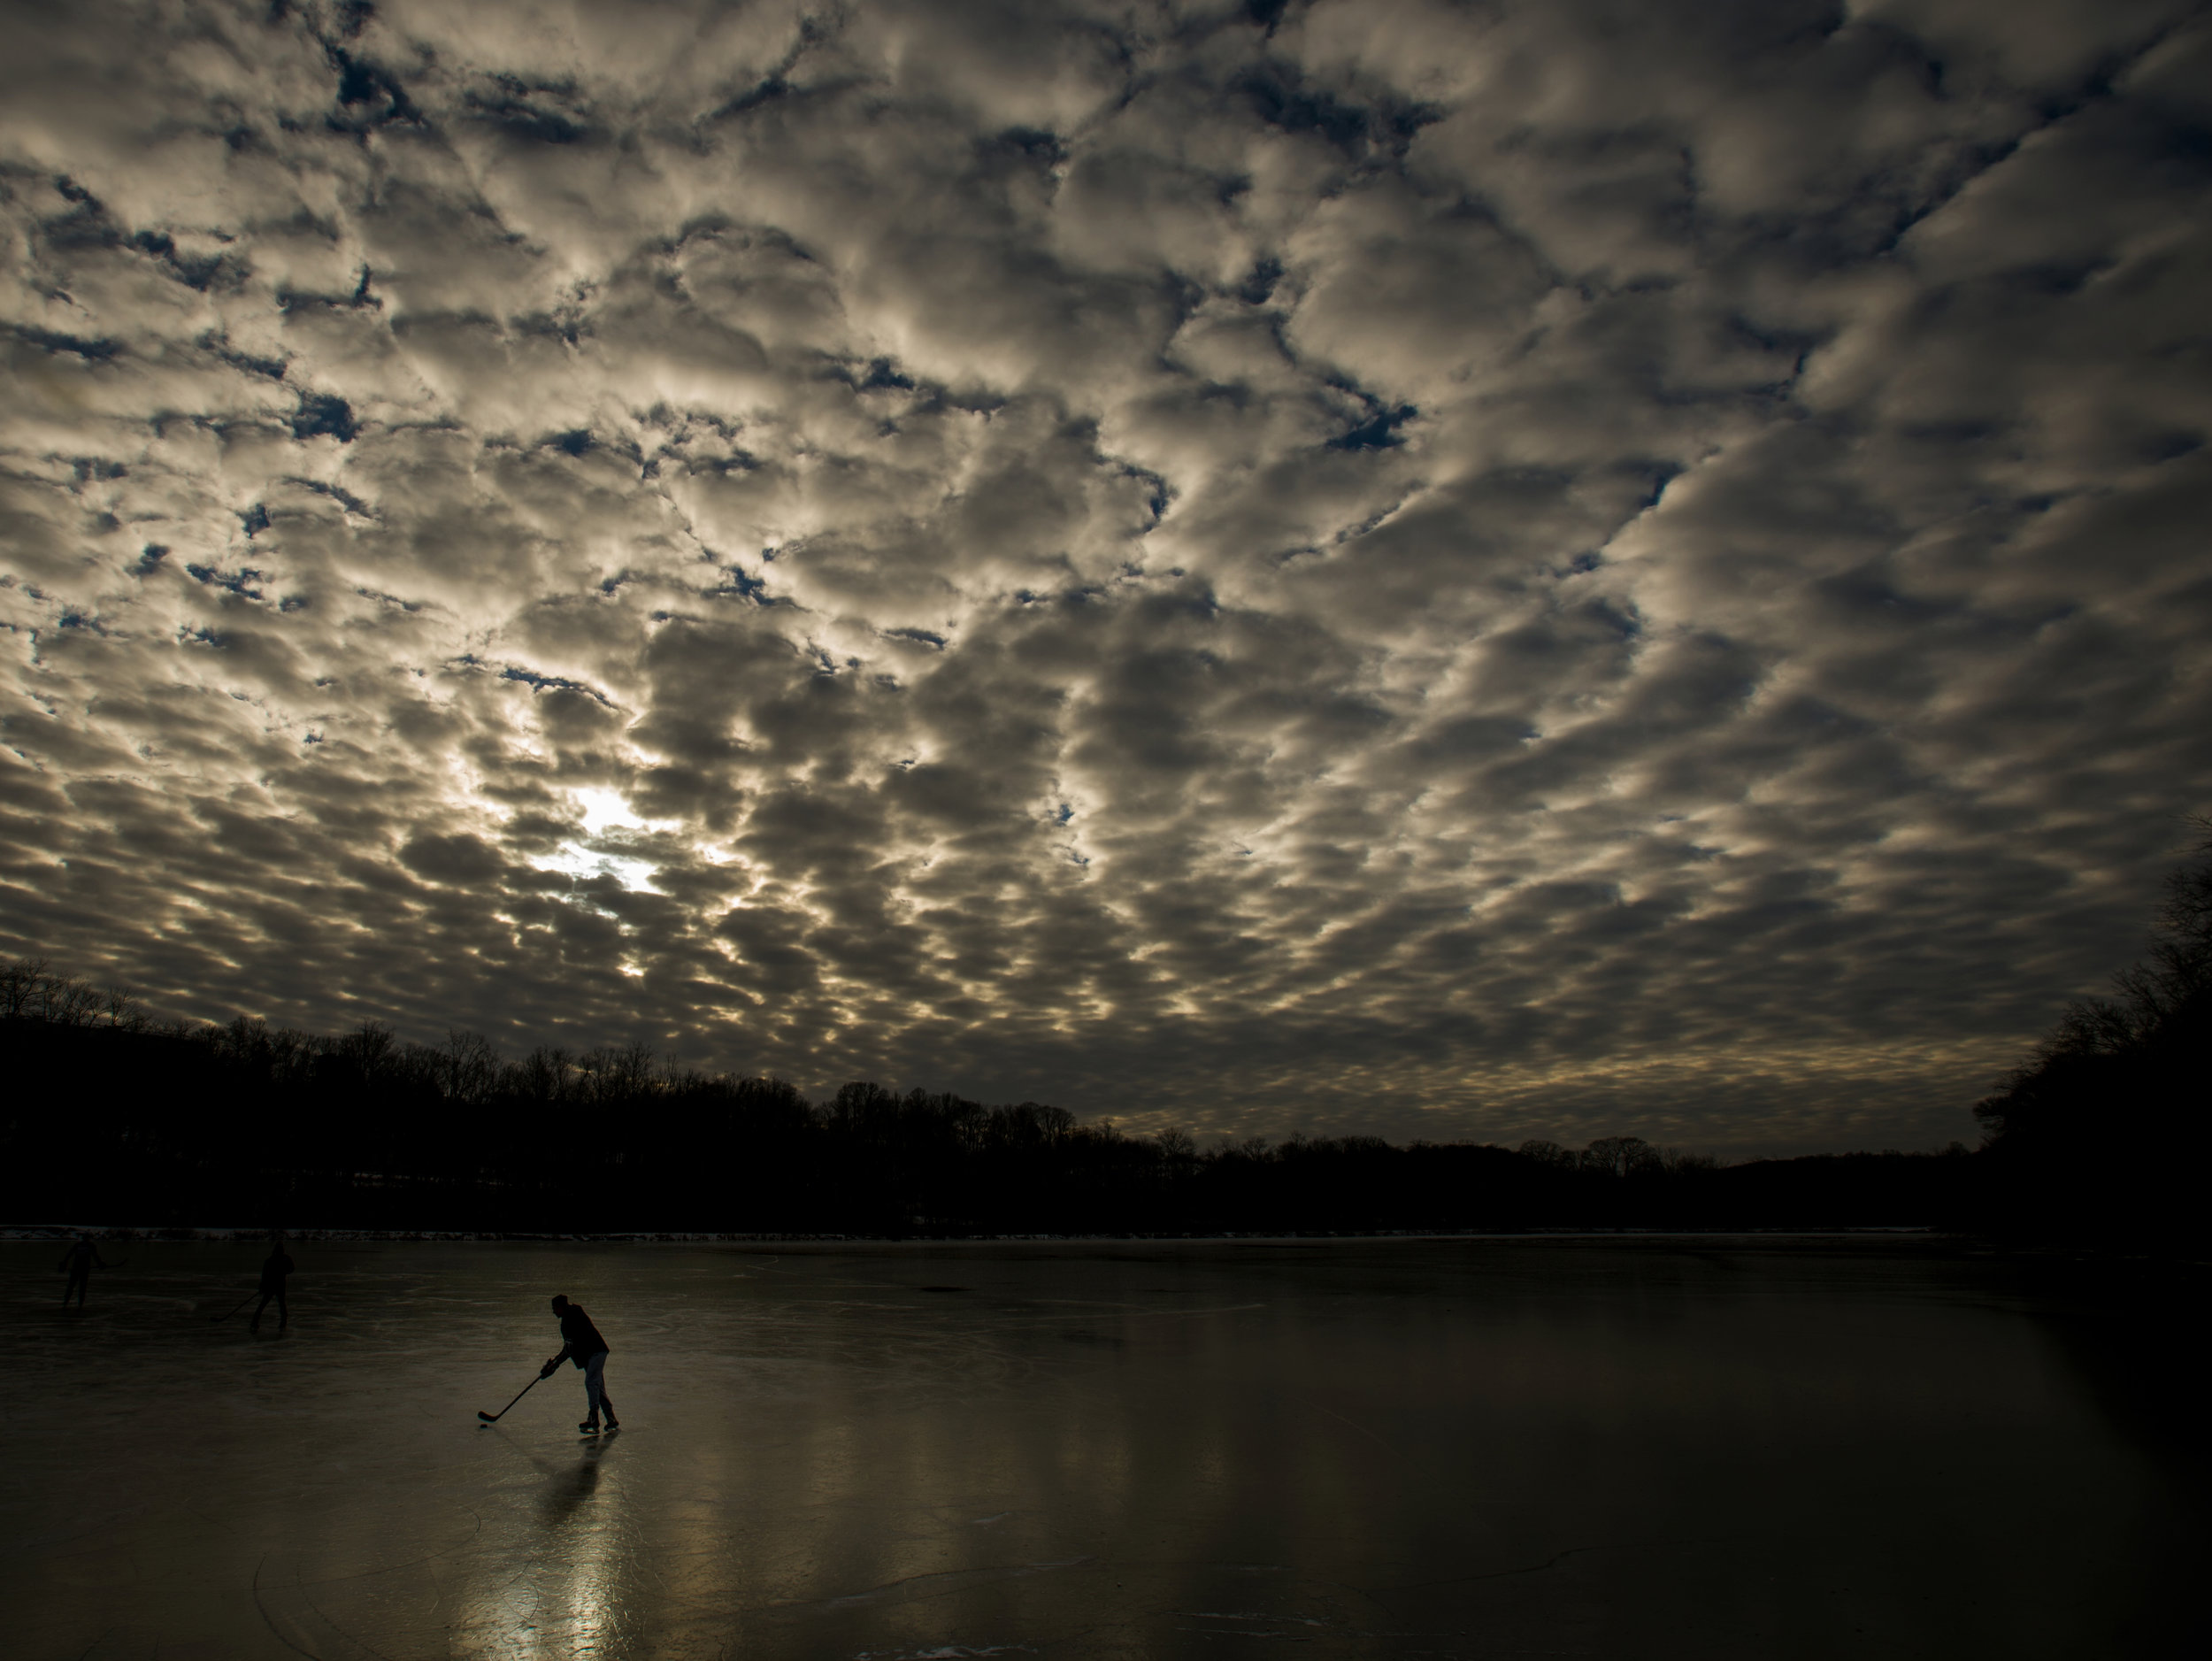 Chris Johnson, a Penn State University junior who is home on break, plays hockey on a pond near St. Vincent College in Unity Monday, Jan. 9, 2017. (Steph Chambers | Tribune-Review)